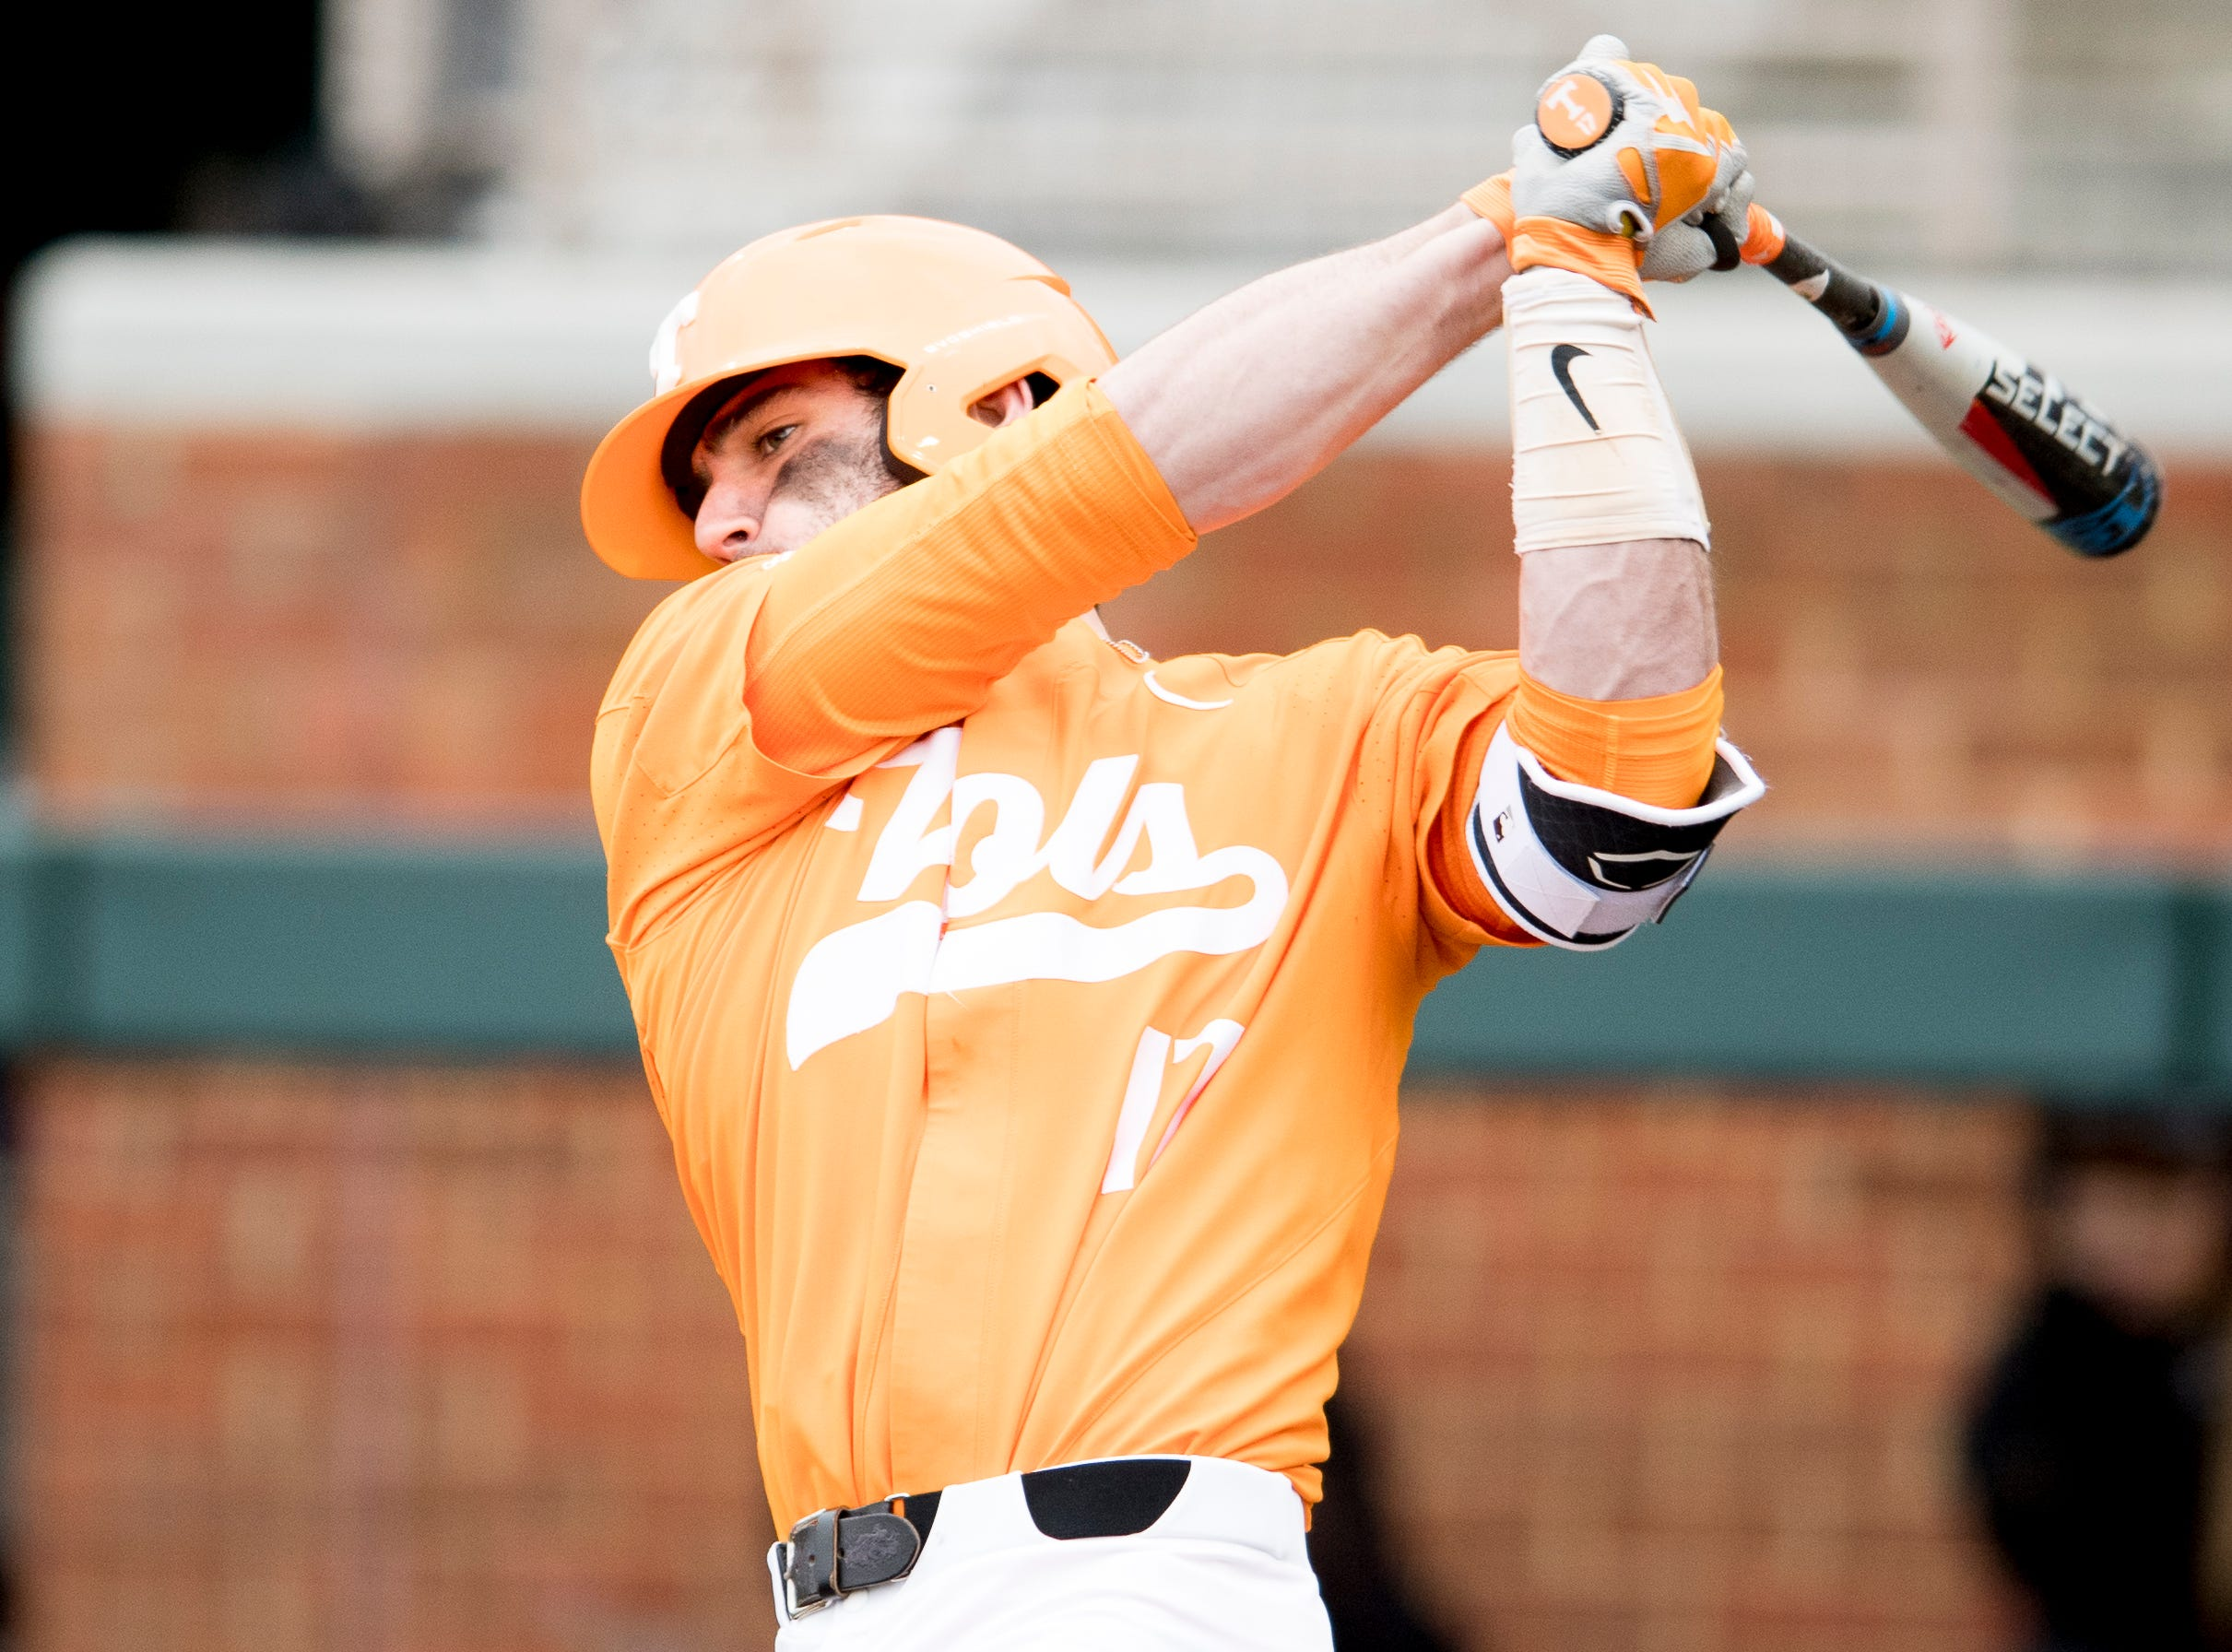 Tennessee catcher Connor Pavolony (17) swings during a Tennessee baseball home opener game against Appalachian State at Lindsey Nelson Stadium in Knoxville, Tennessee on Saturday, February 16, 2019.